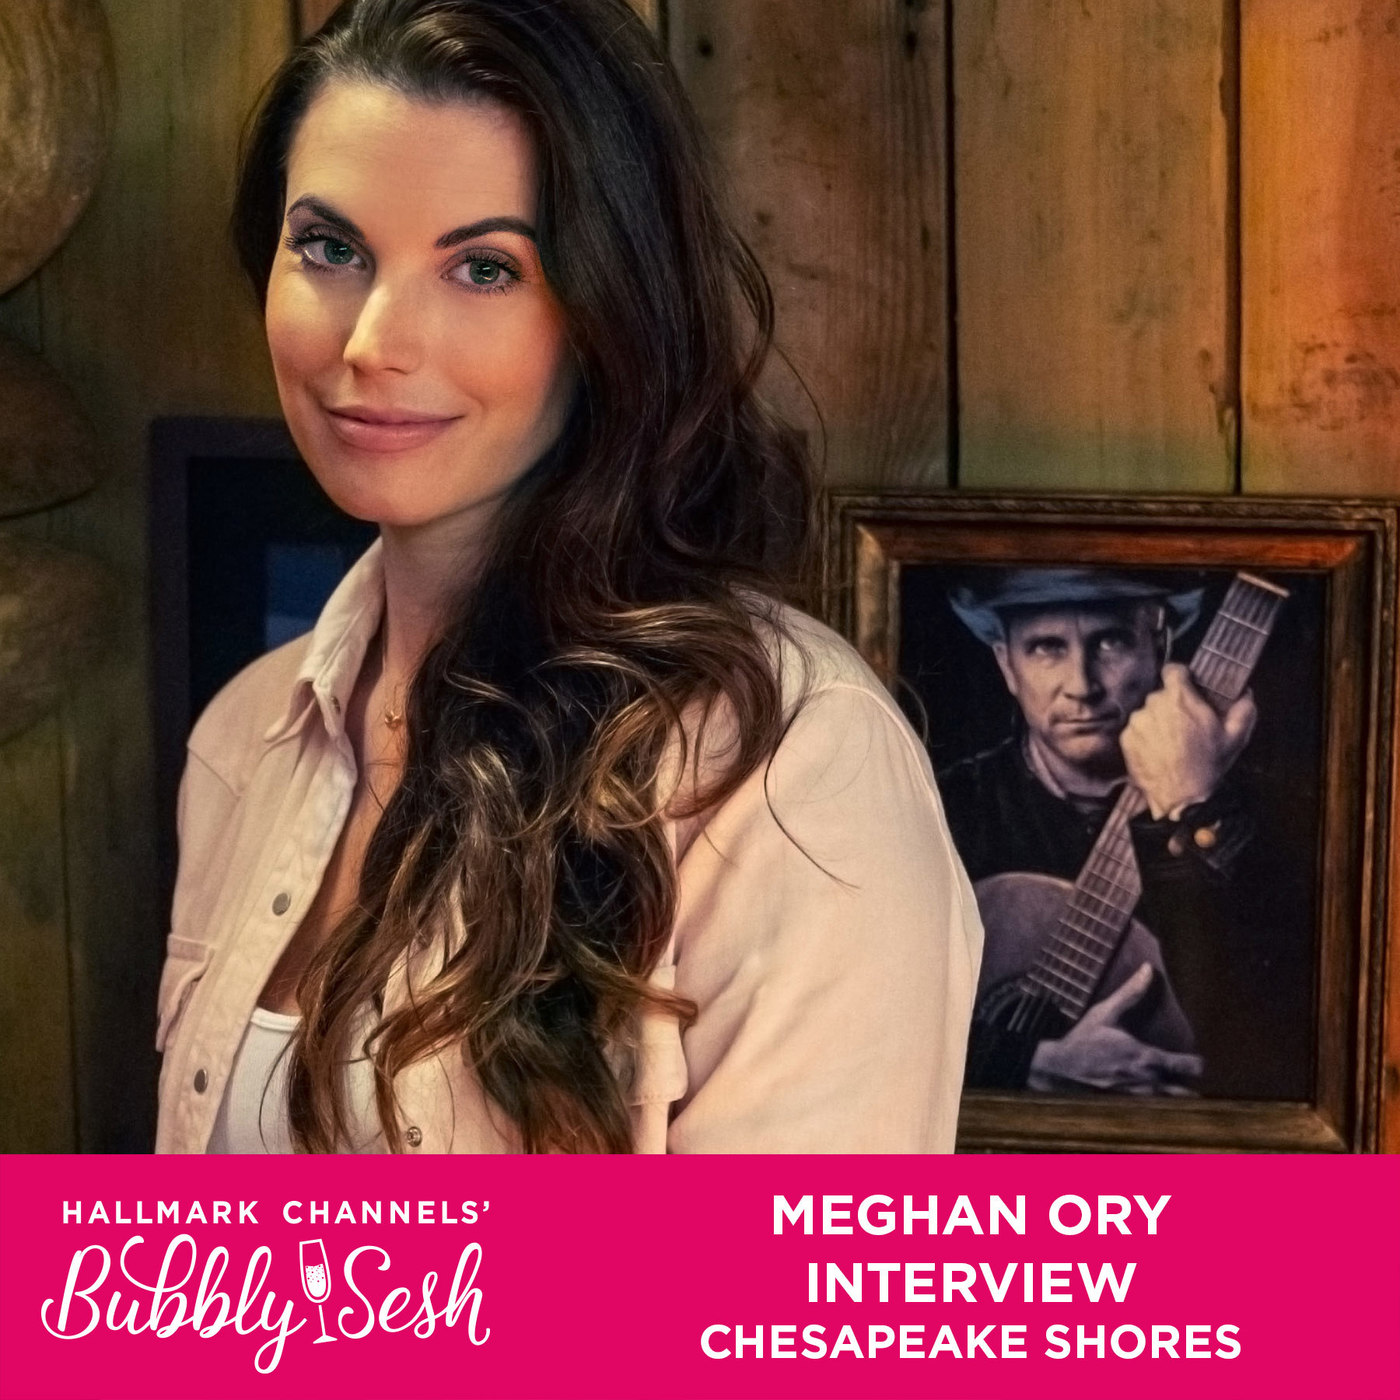 Meghan Ory Interview, Chesapeake Shores